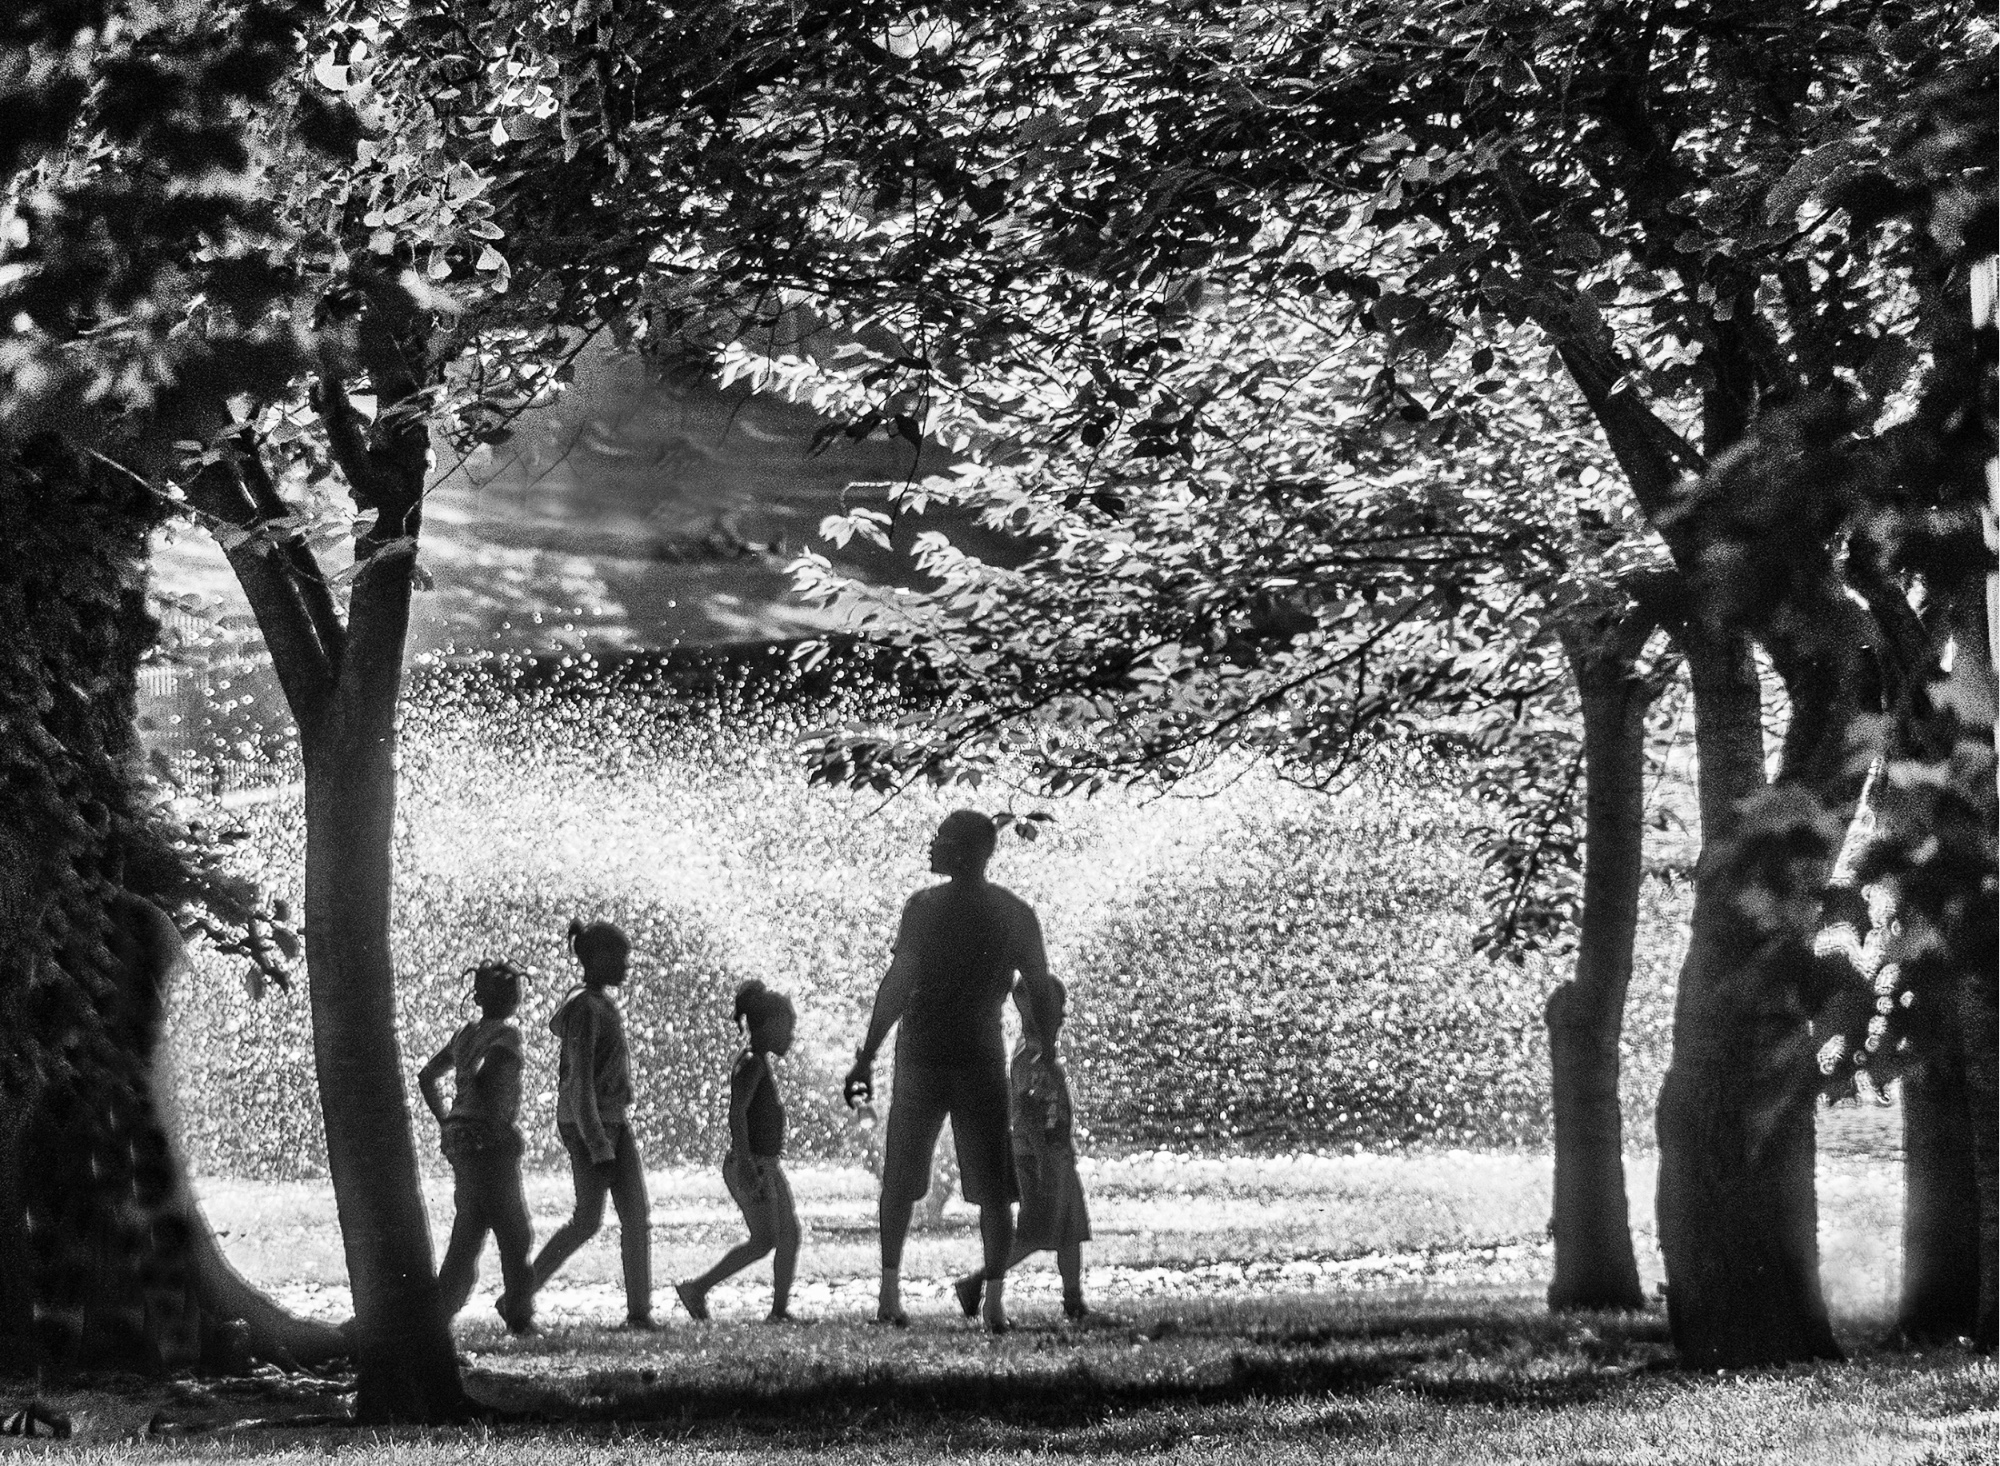 Honorable Mention - A Stroll in the Park